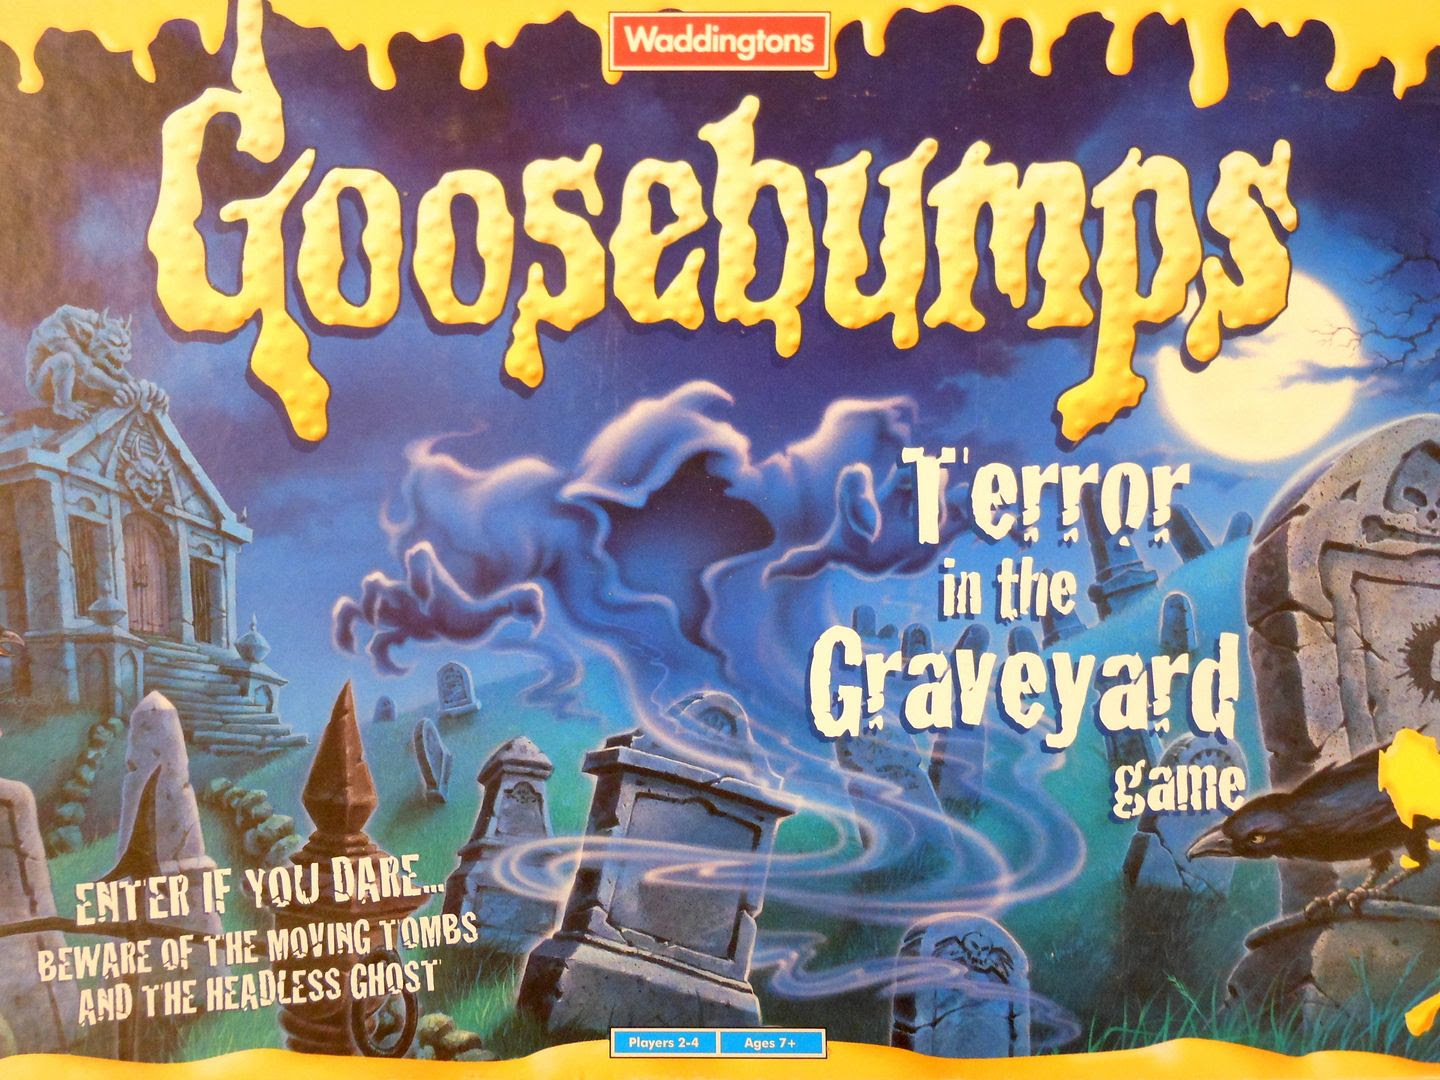 Goosebumps Terror in the Graveyard board game board game box art, showing the headless ghost preparing to strike.